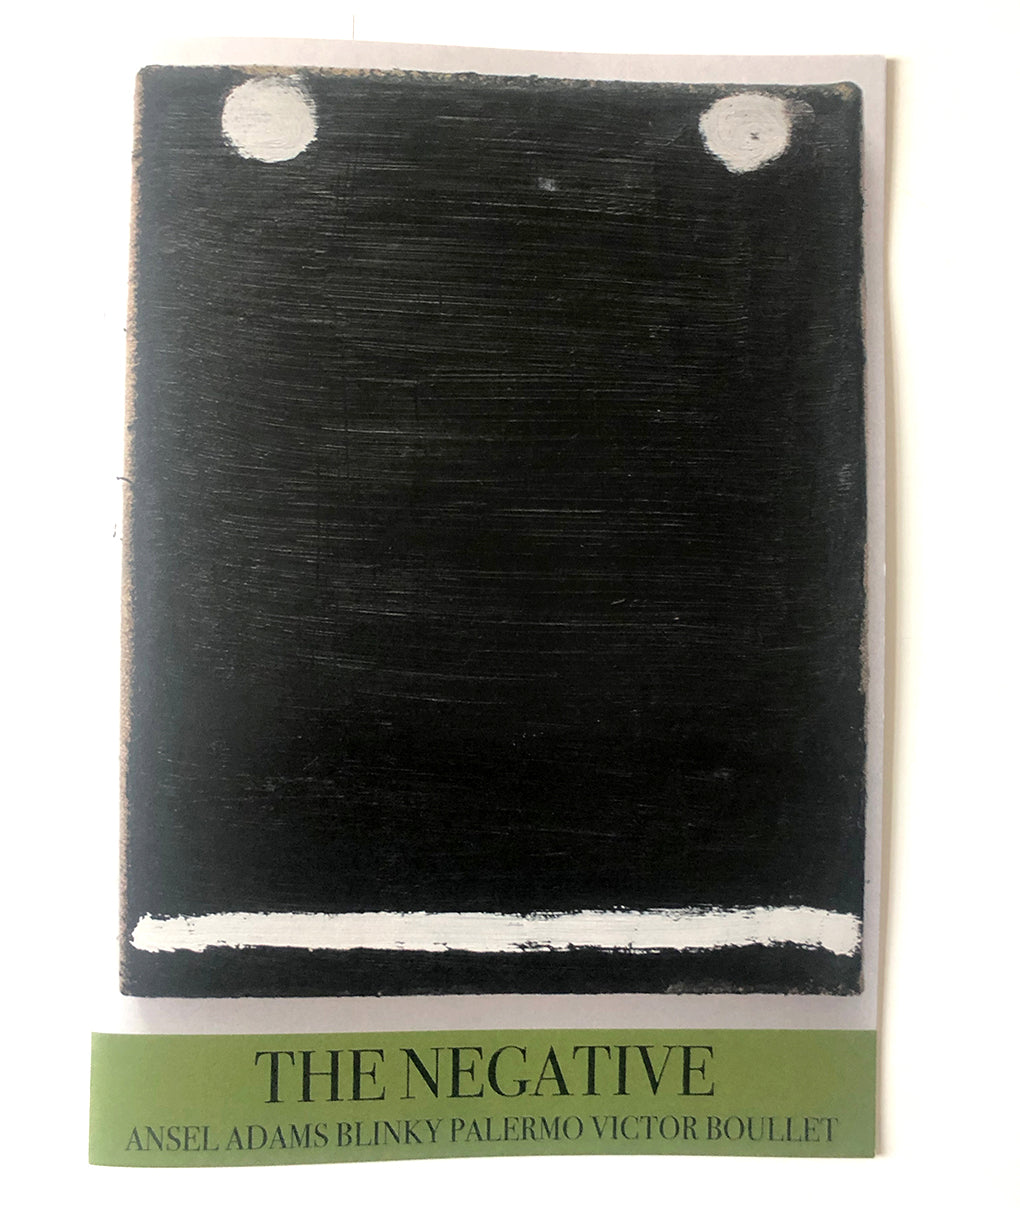 The Negative - Ansel Adams Blinky Palermo Victor Boullet - Fanzine